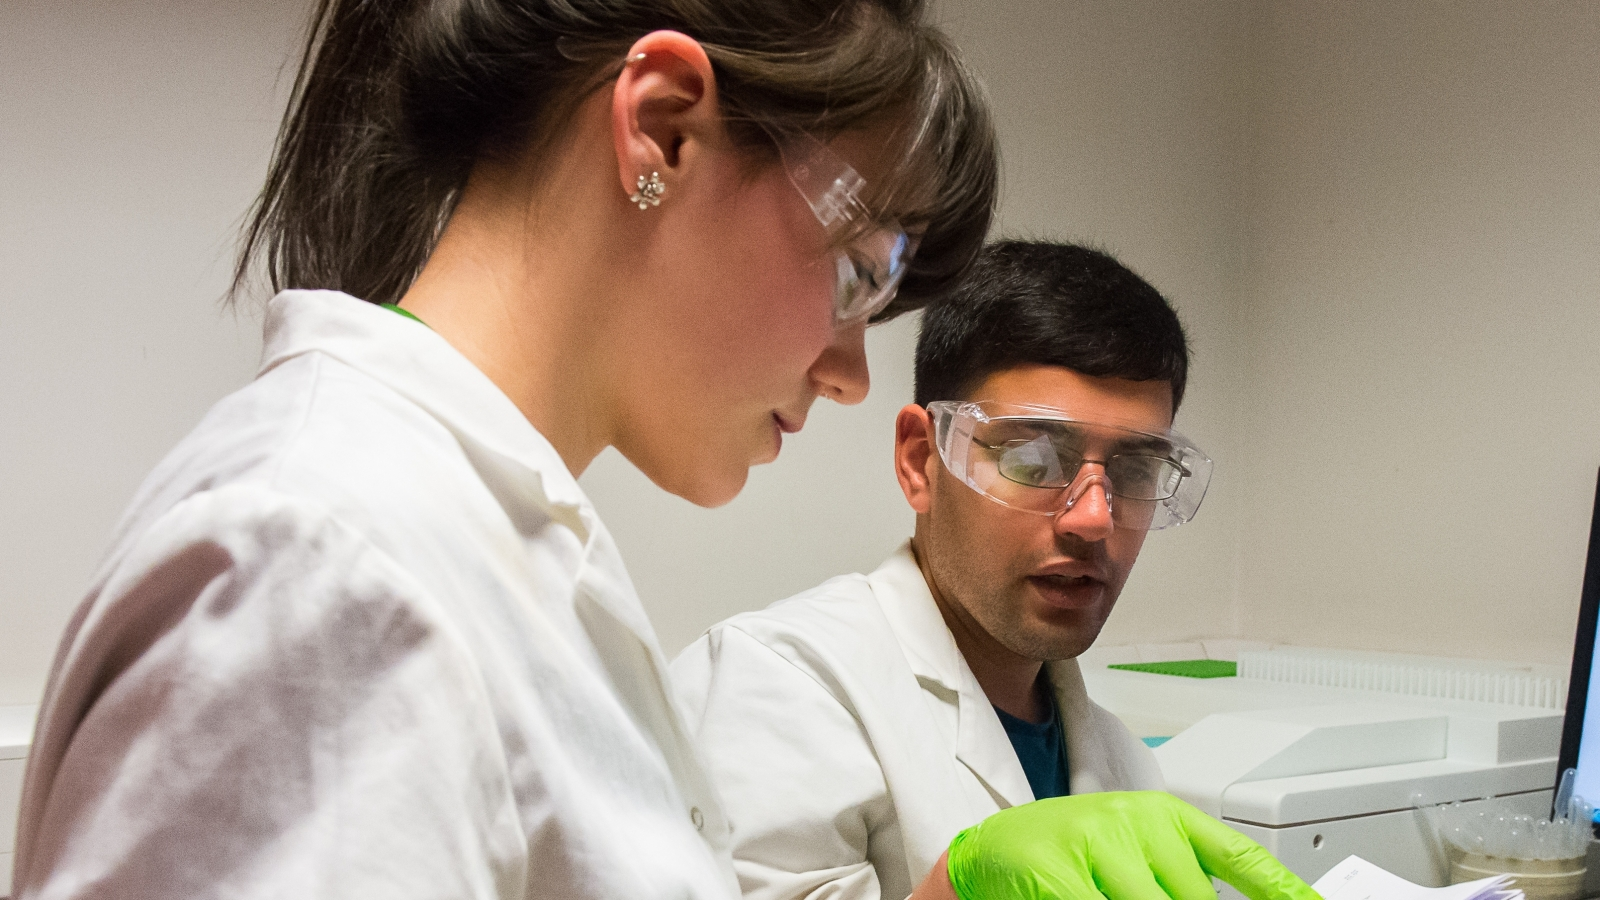 Science students in lab coats and safety glasses